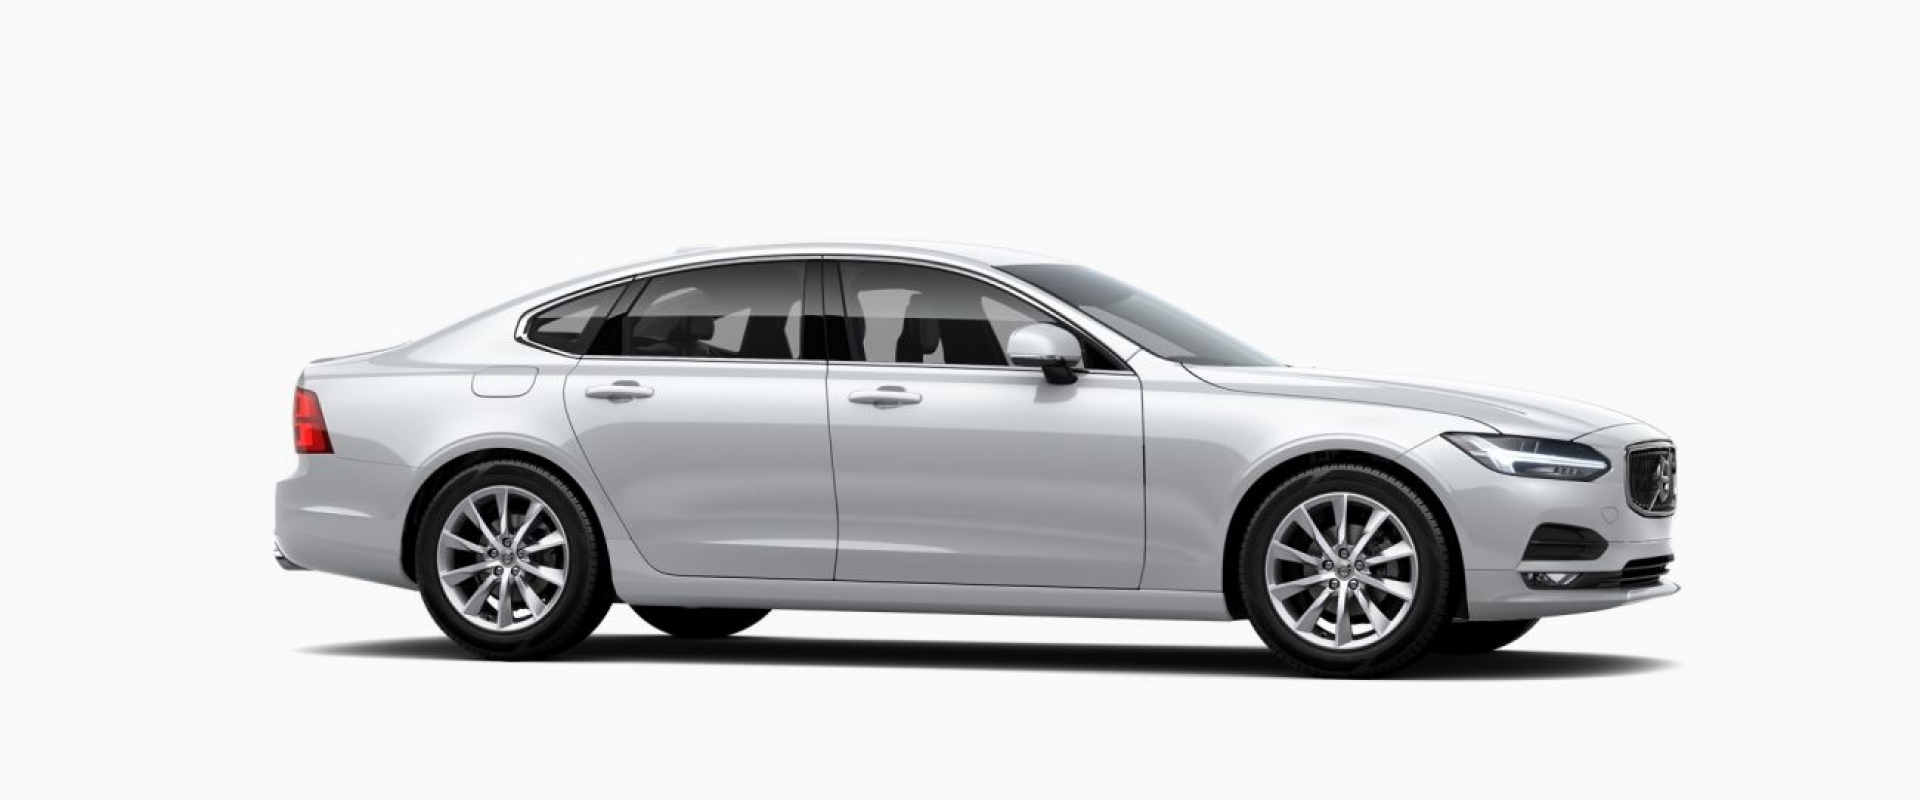 Photo d'un véhicule Volvo S90 TWIN ENGINE